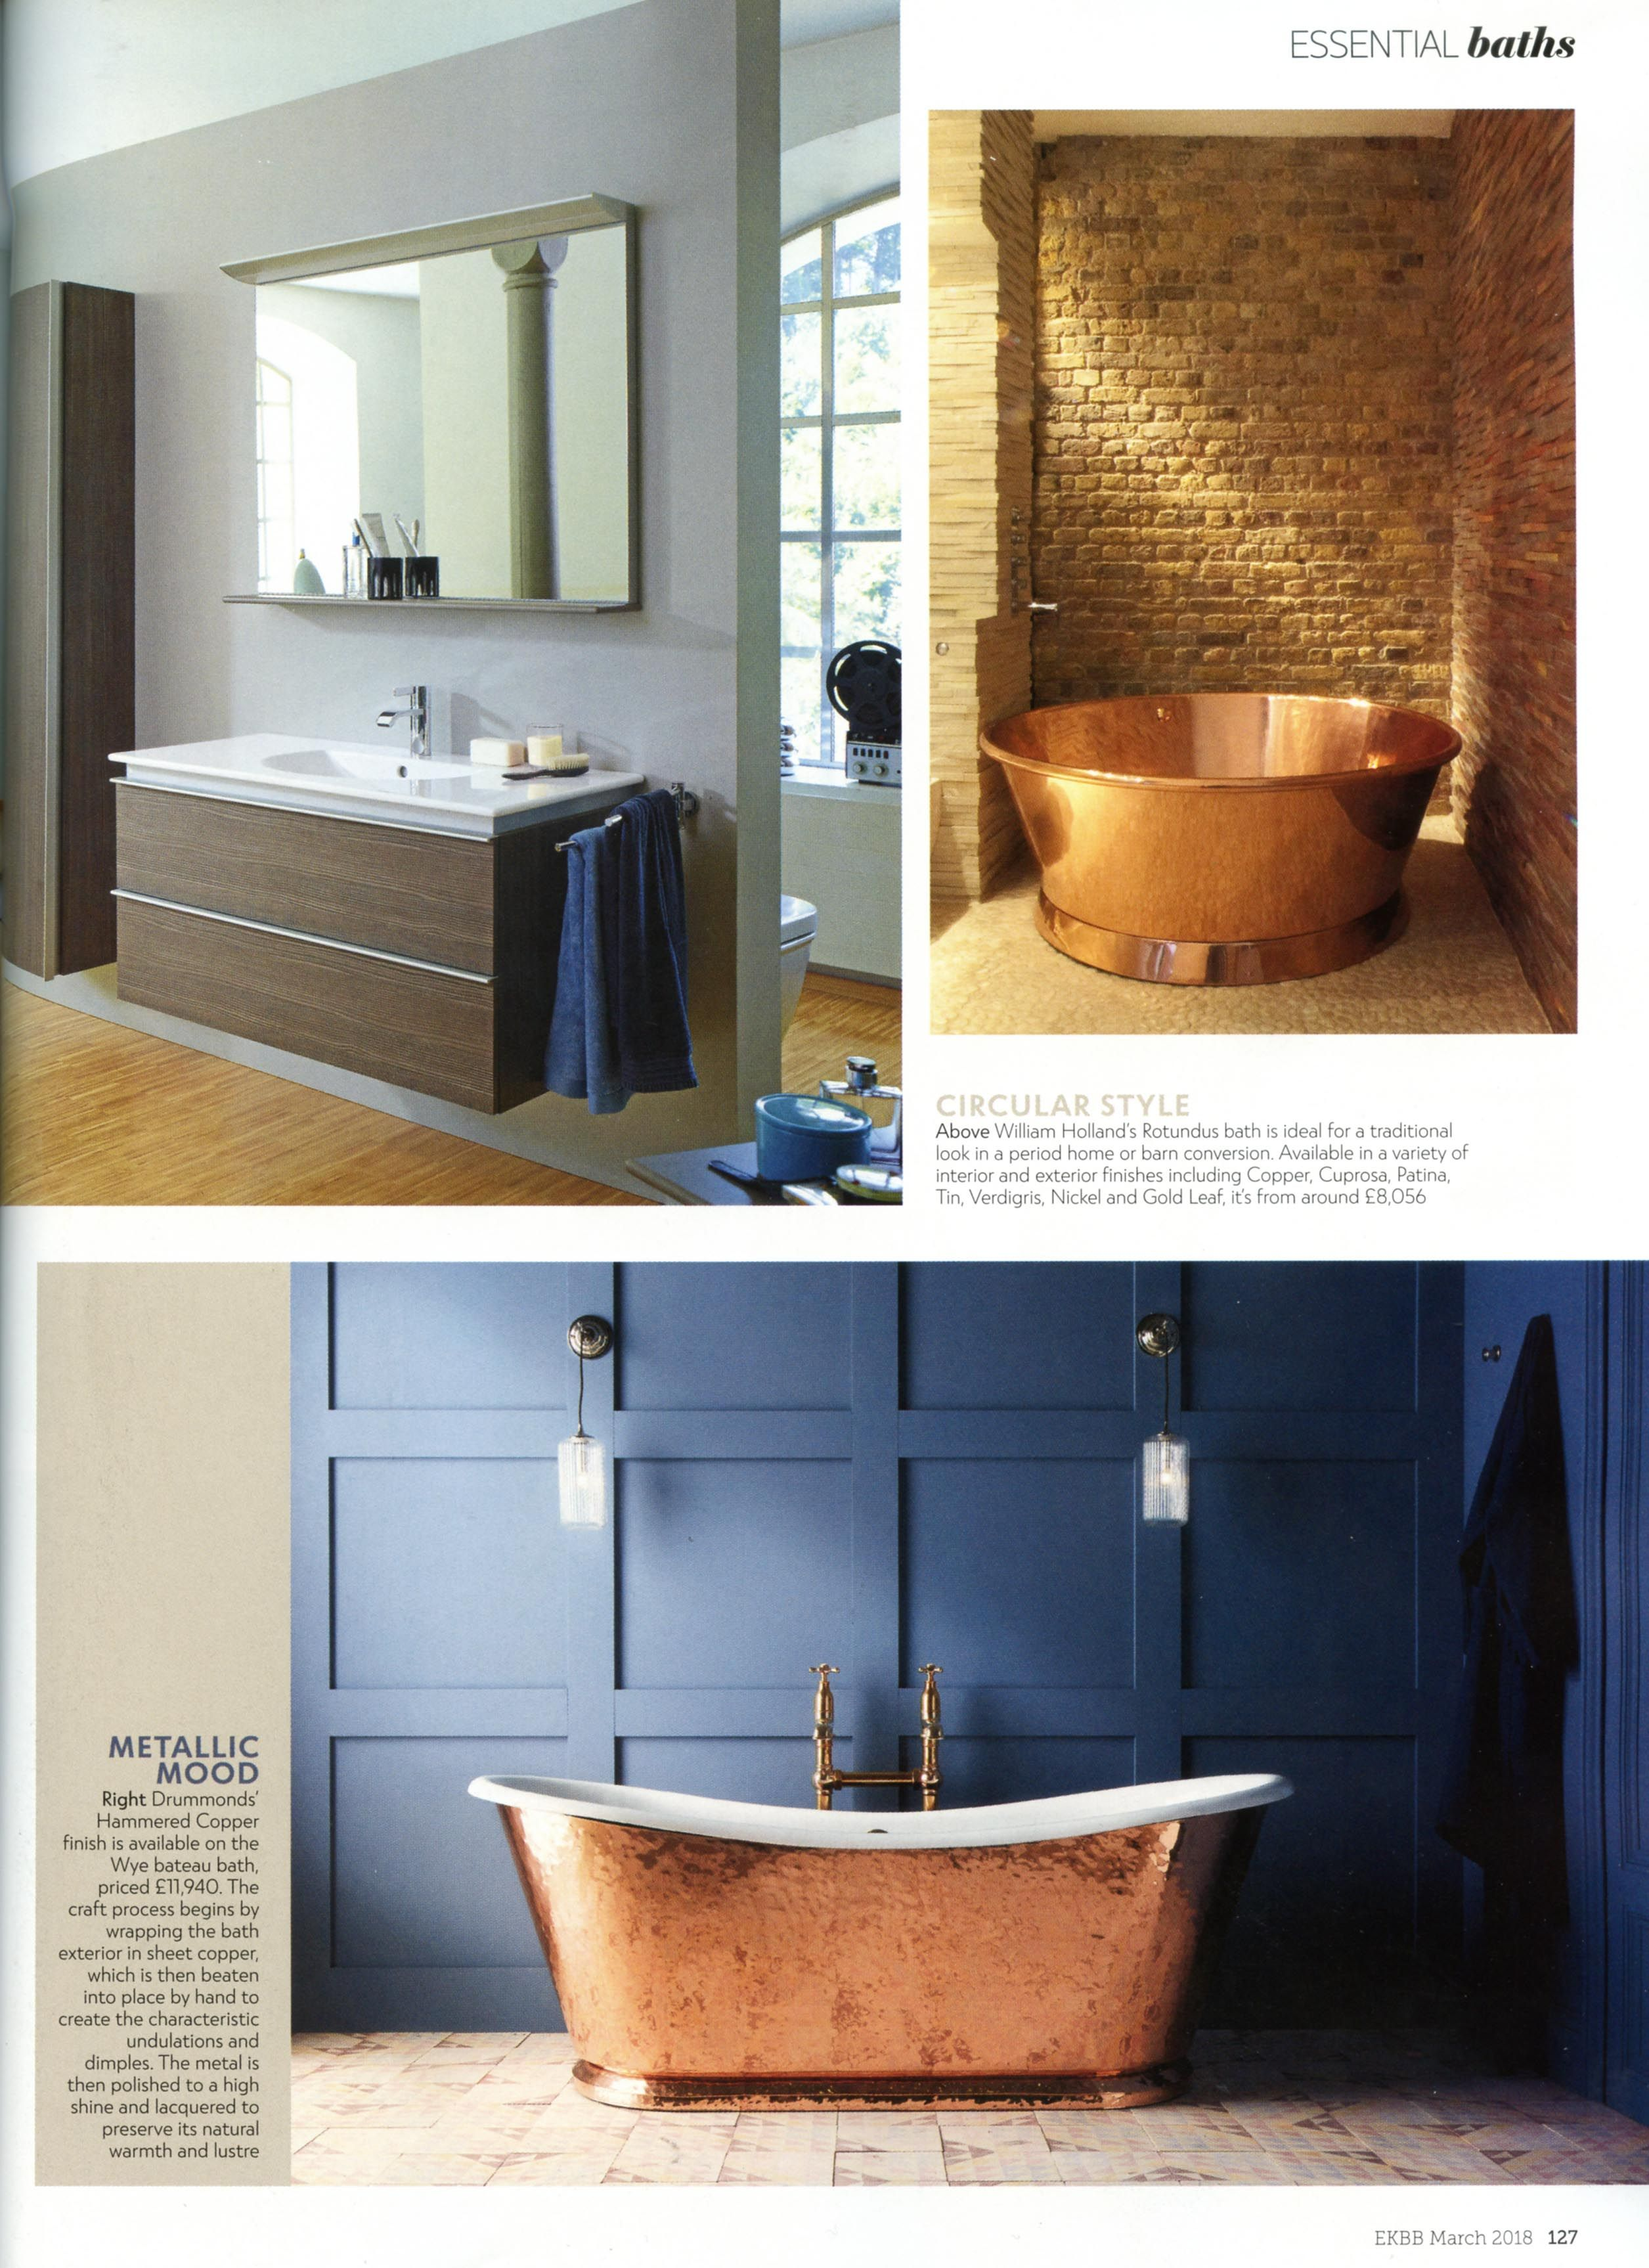 Drummonds Hammered Copper finish is available on the Wye bateau bath ...